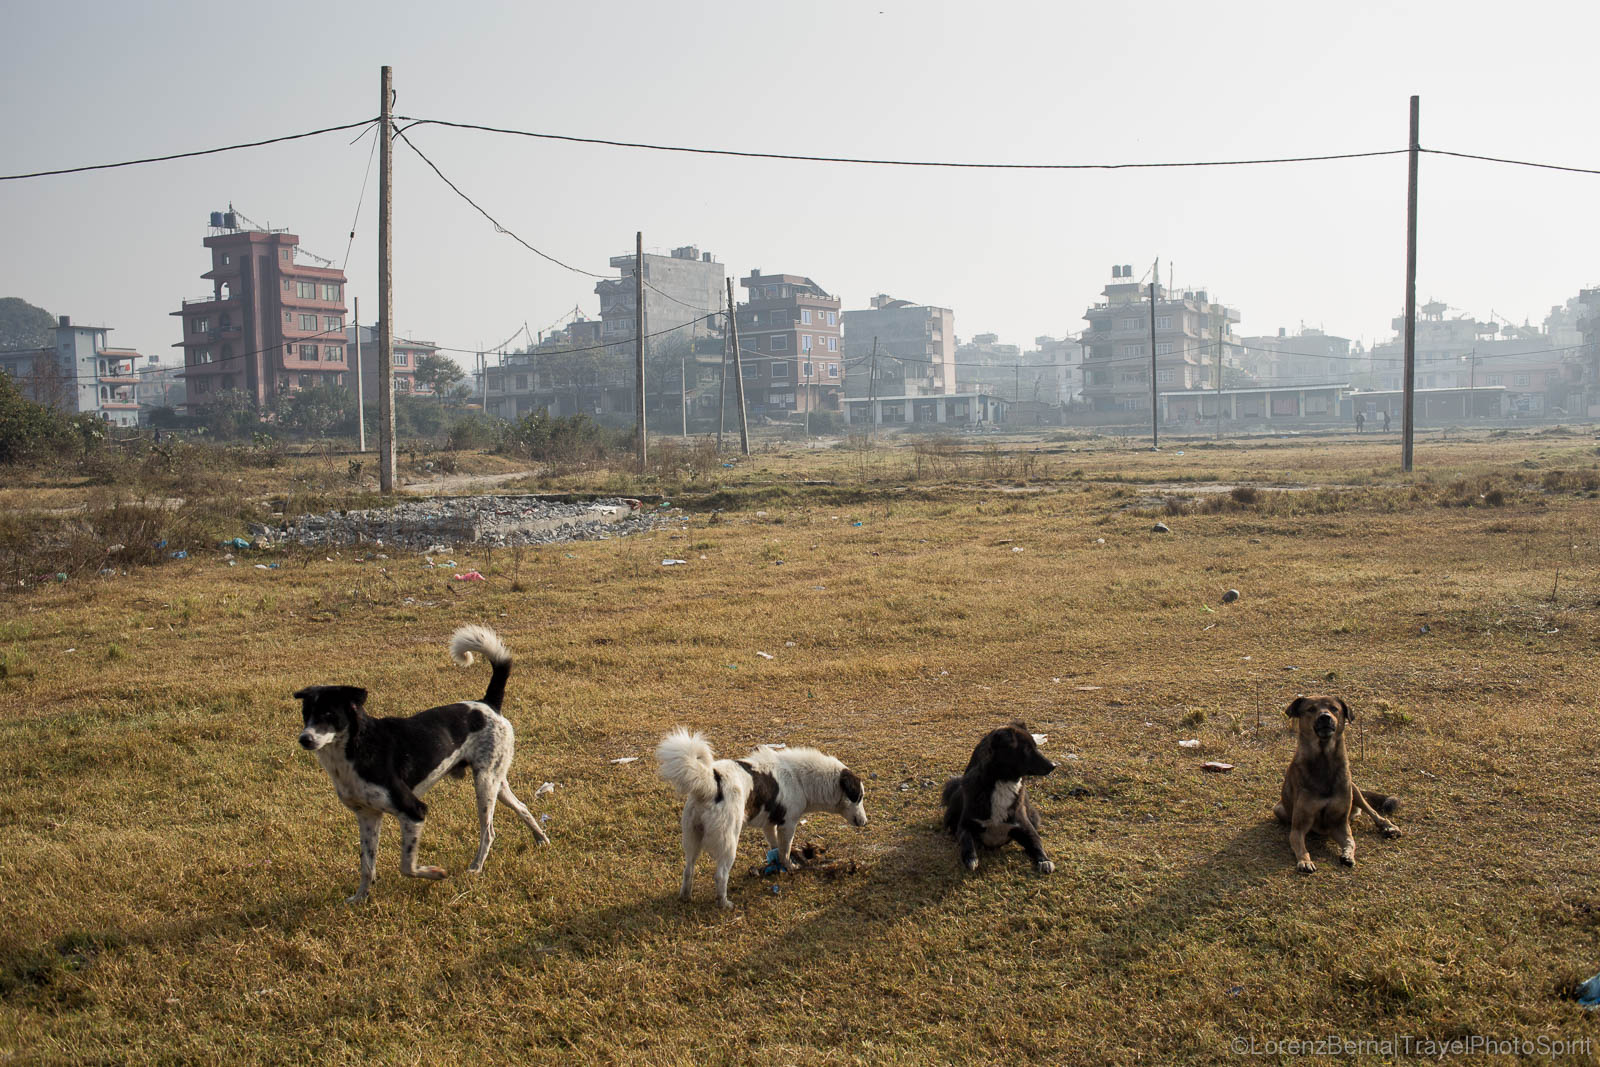 Dogs gang in a wasteland resting from a whole night of wandering, race or fight, in Kathmandu, Nepal.